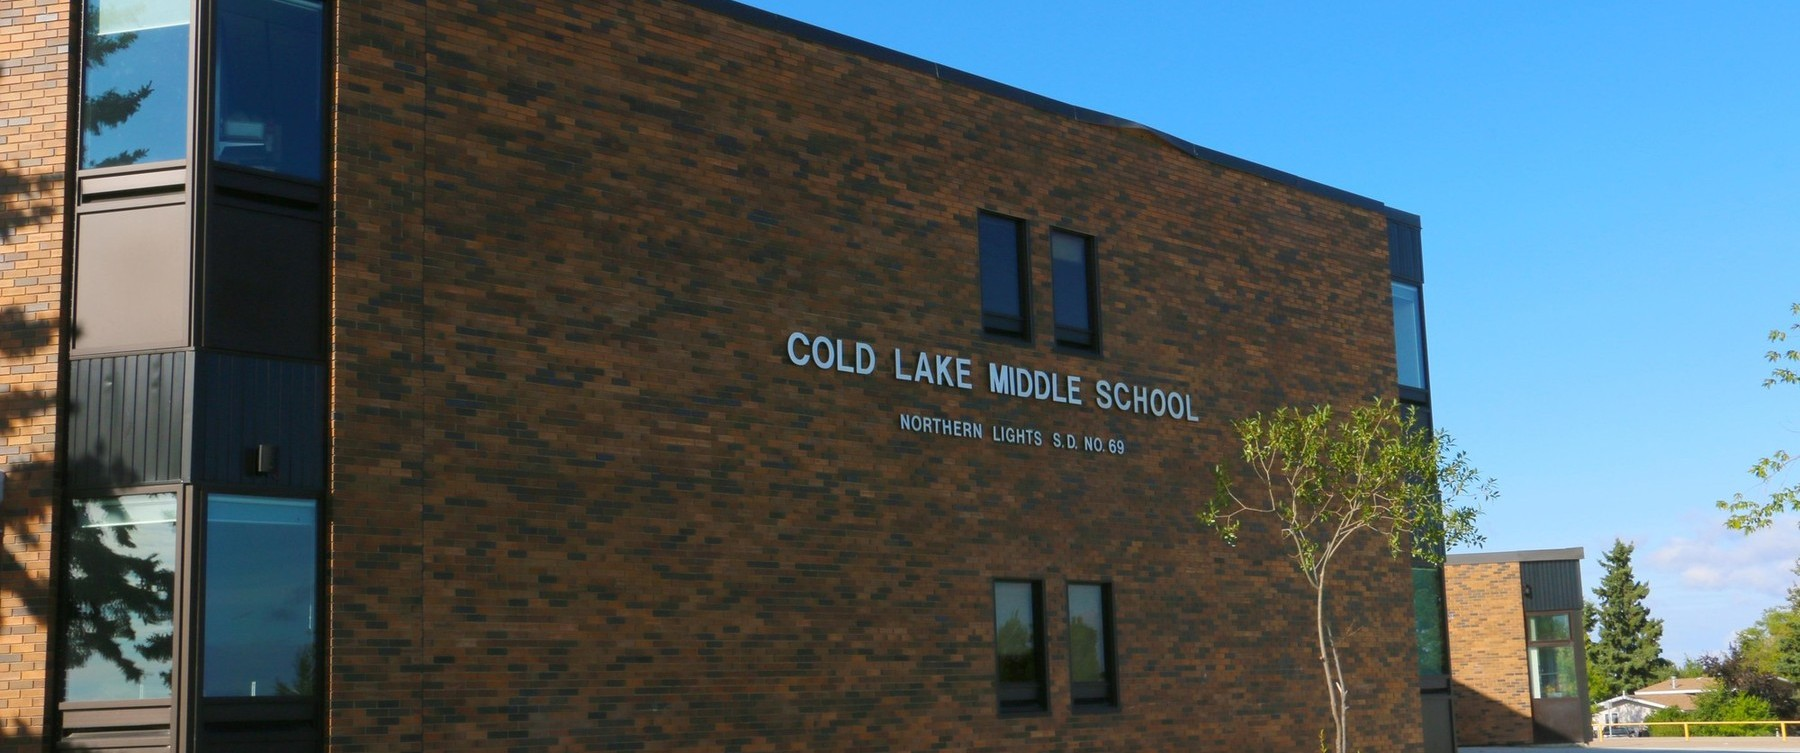 Home | Cold Lake Middle School